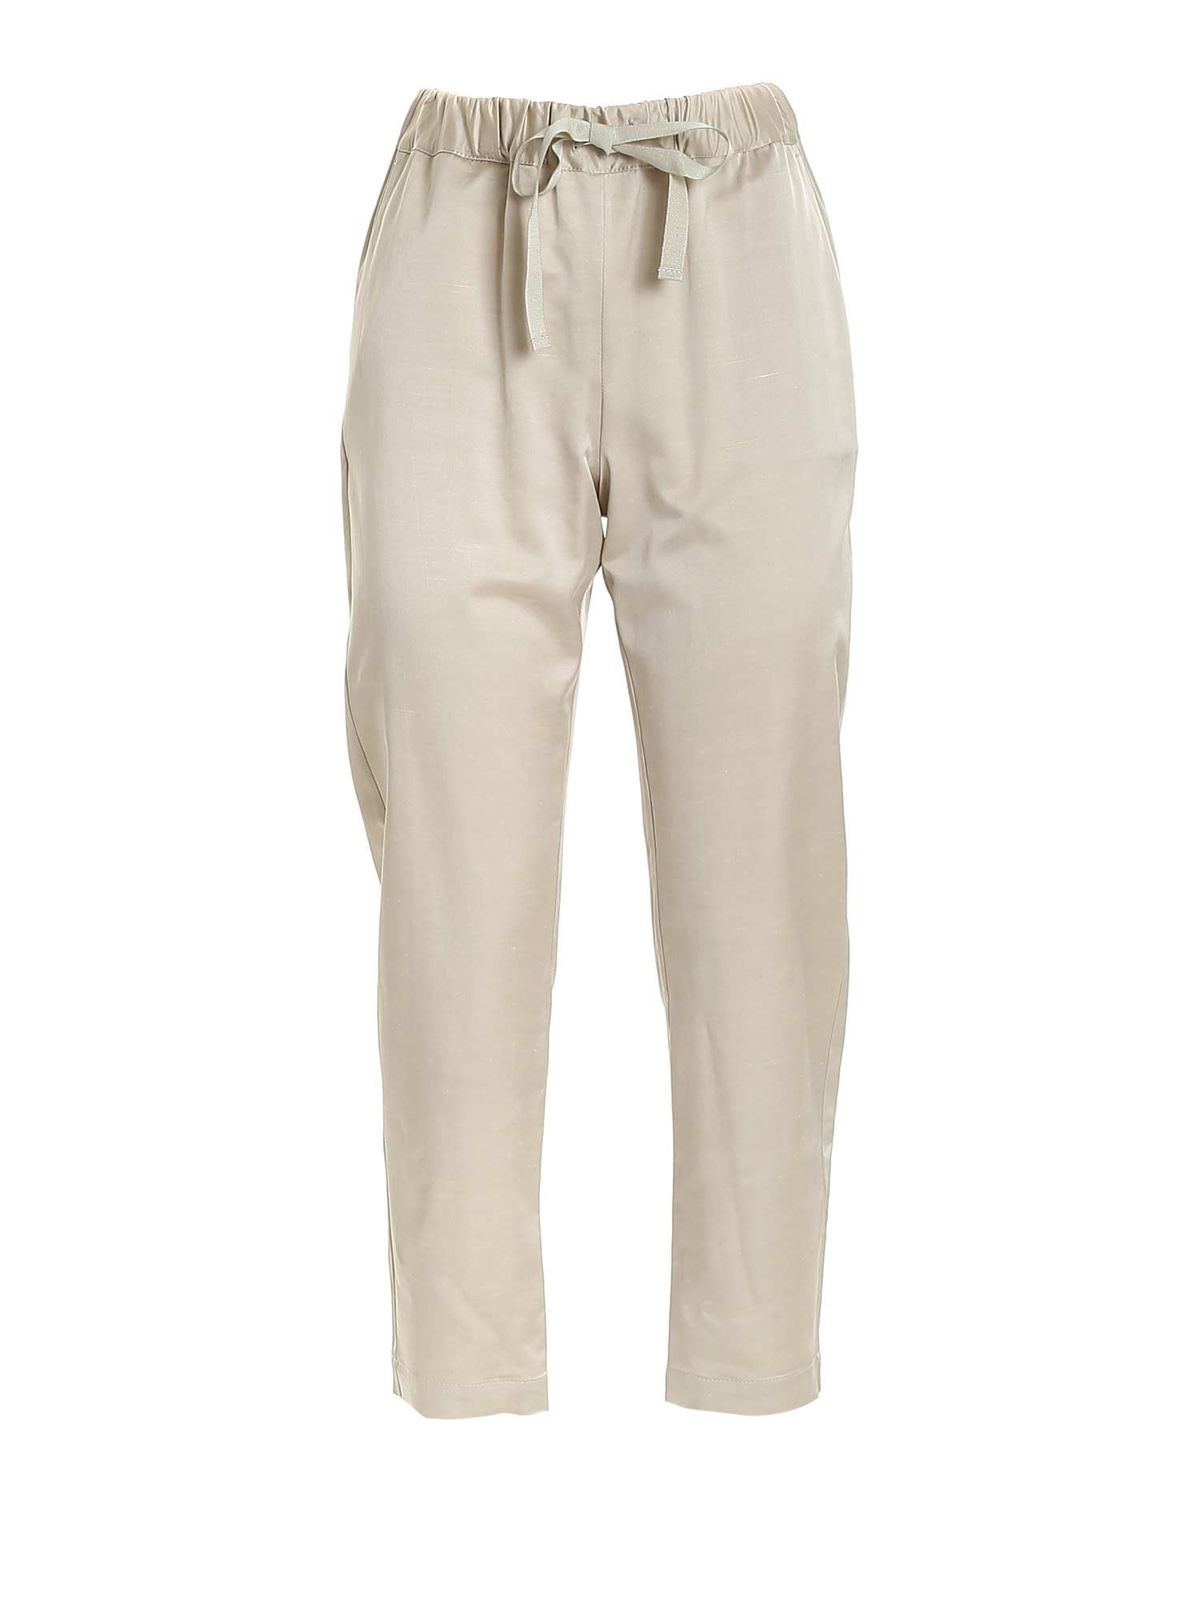 Semicouture BUDDY PANTS IN DOVE GREY